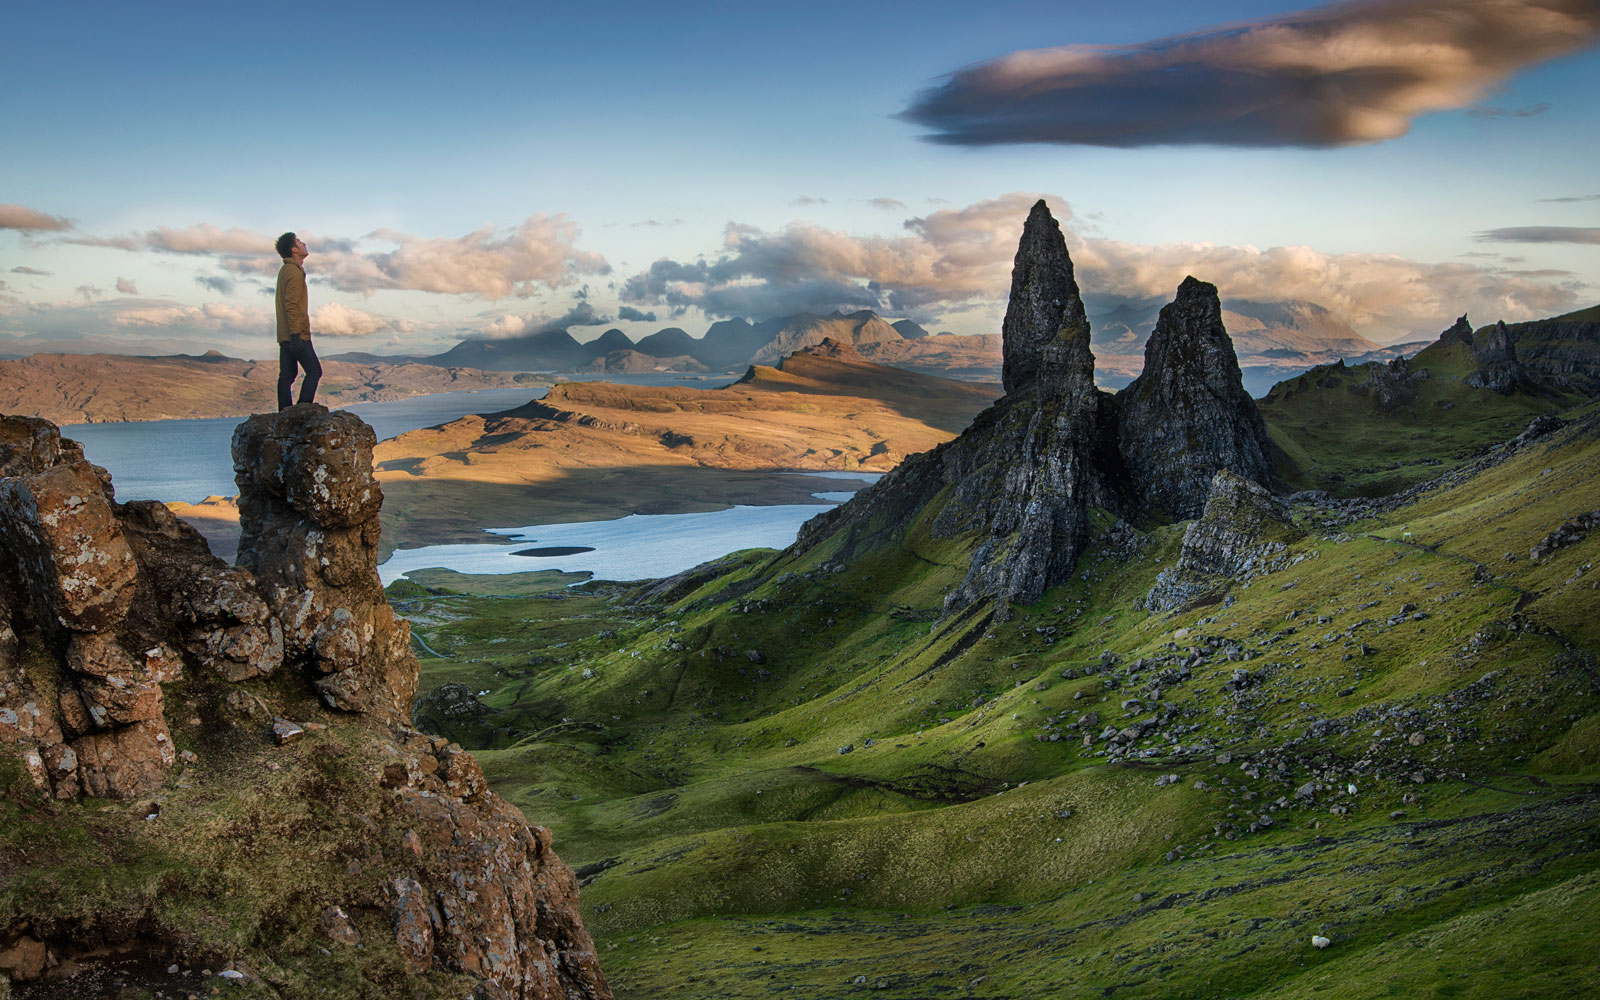 Scotland's New Whisky Trail Takes You to Some of Its Most Stunning Remote Islands